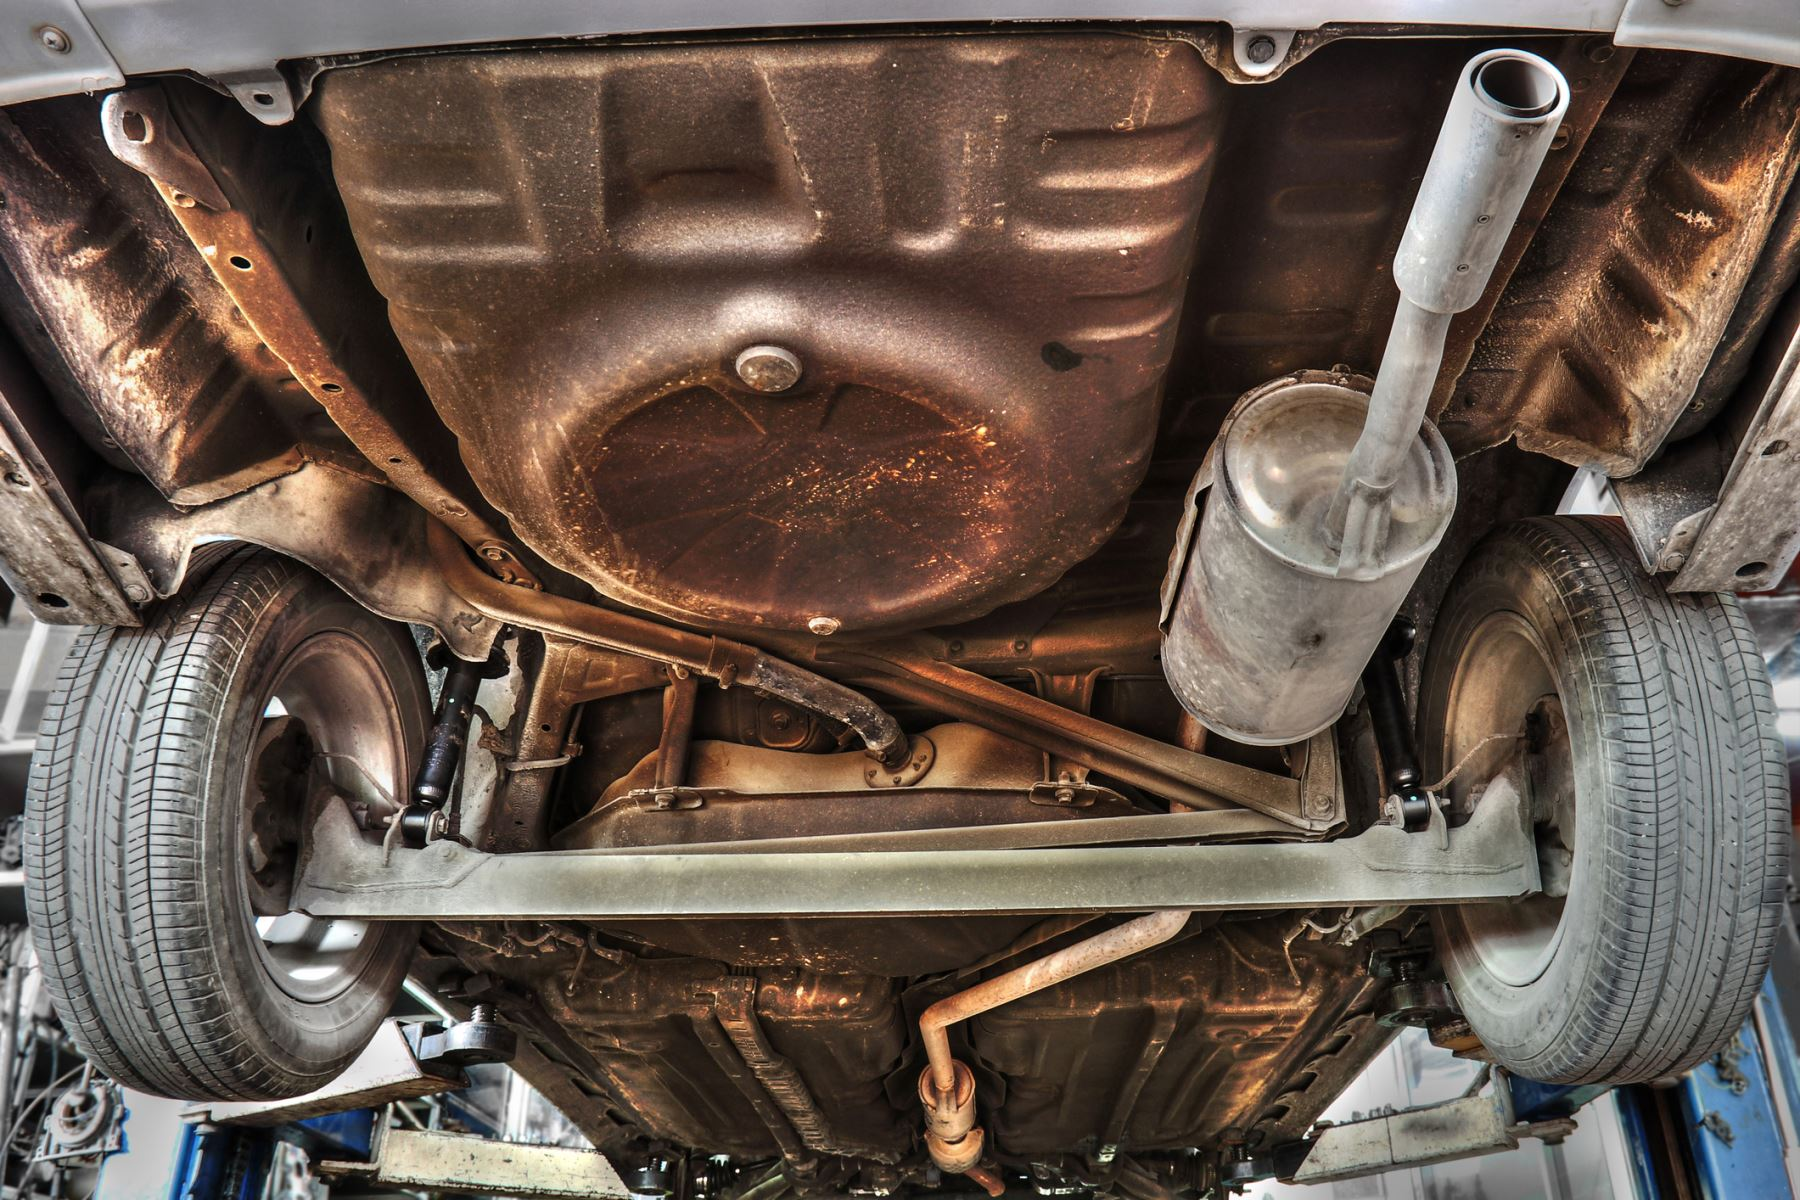 Rust usually excluded from warranties